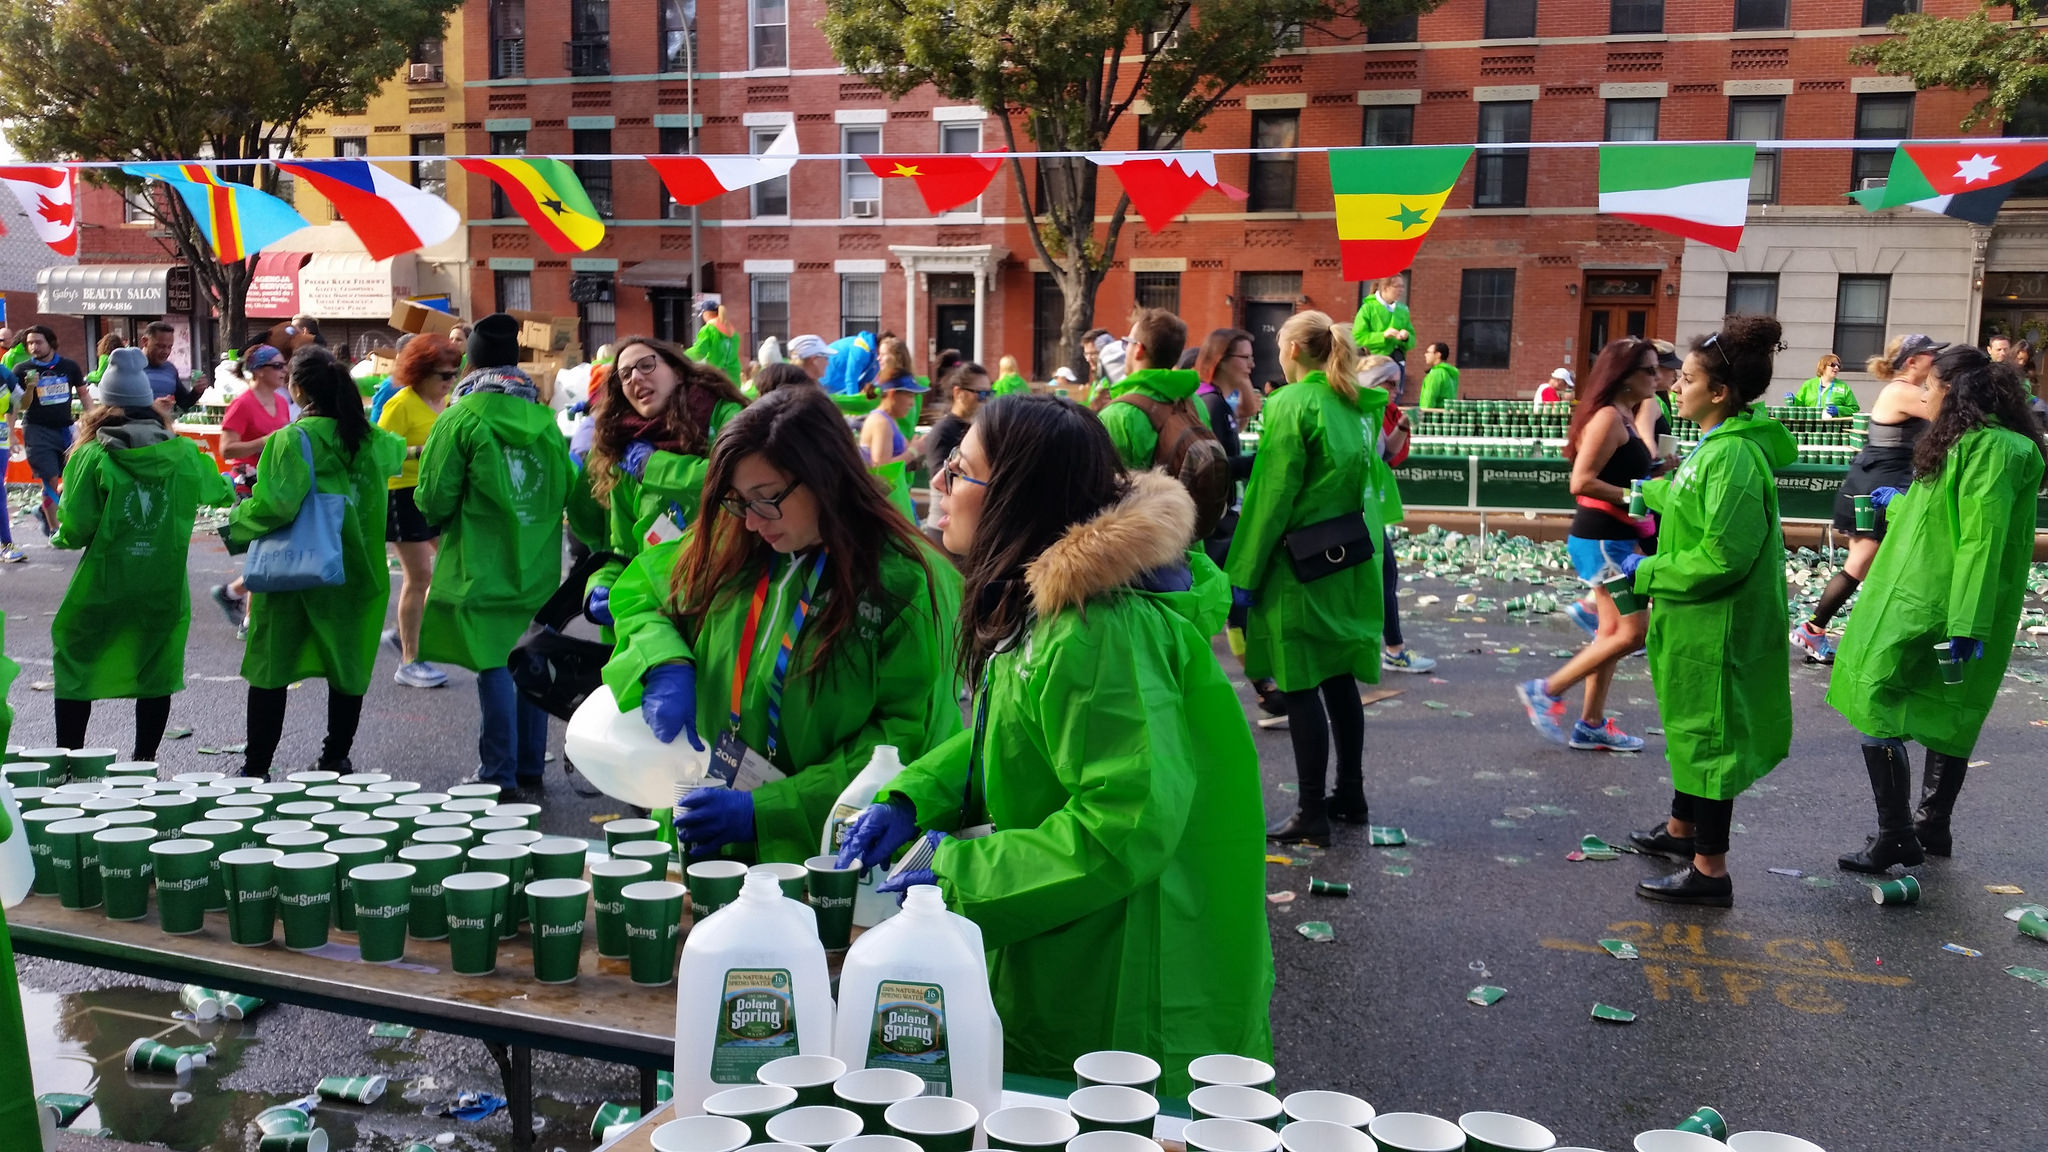 Two girls pour water from gallon jugs into paper cups for marathon runners